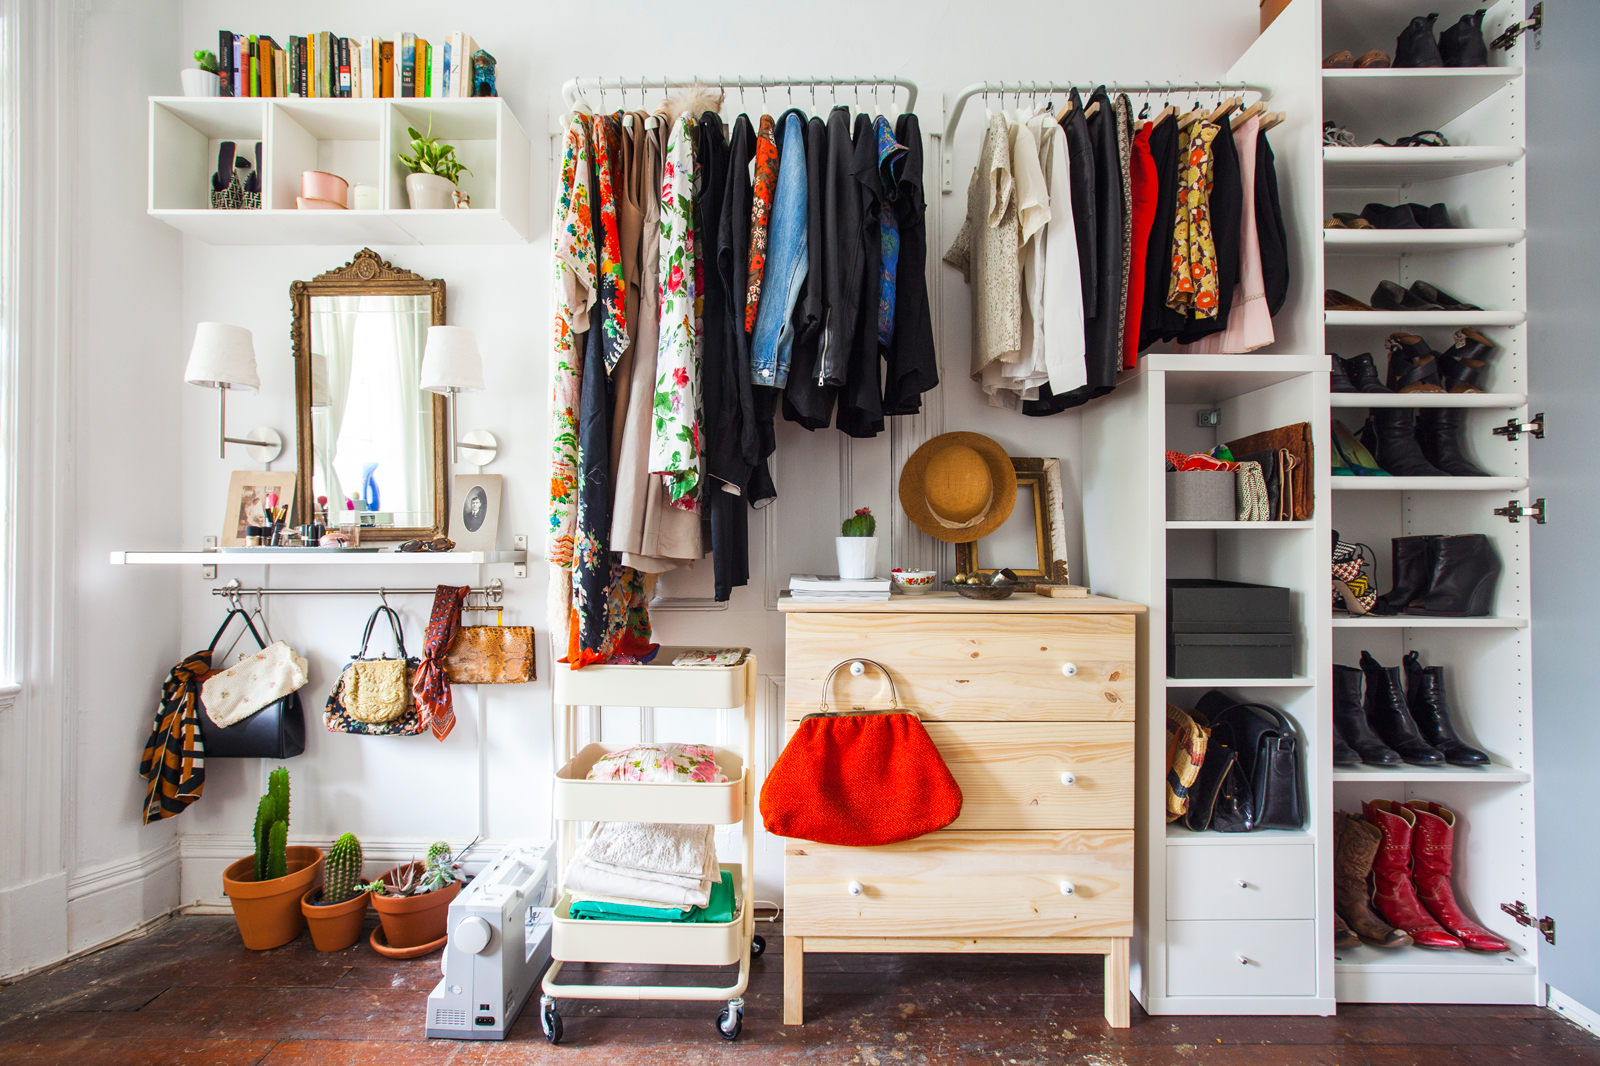 No Closets? No Problem. Here's How To Live Without Them